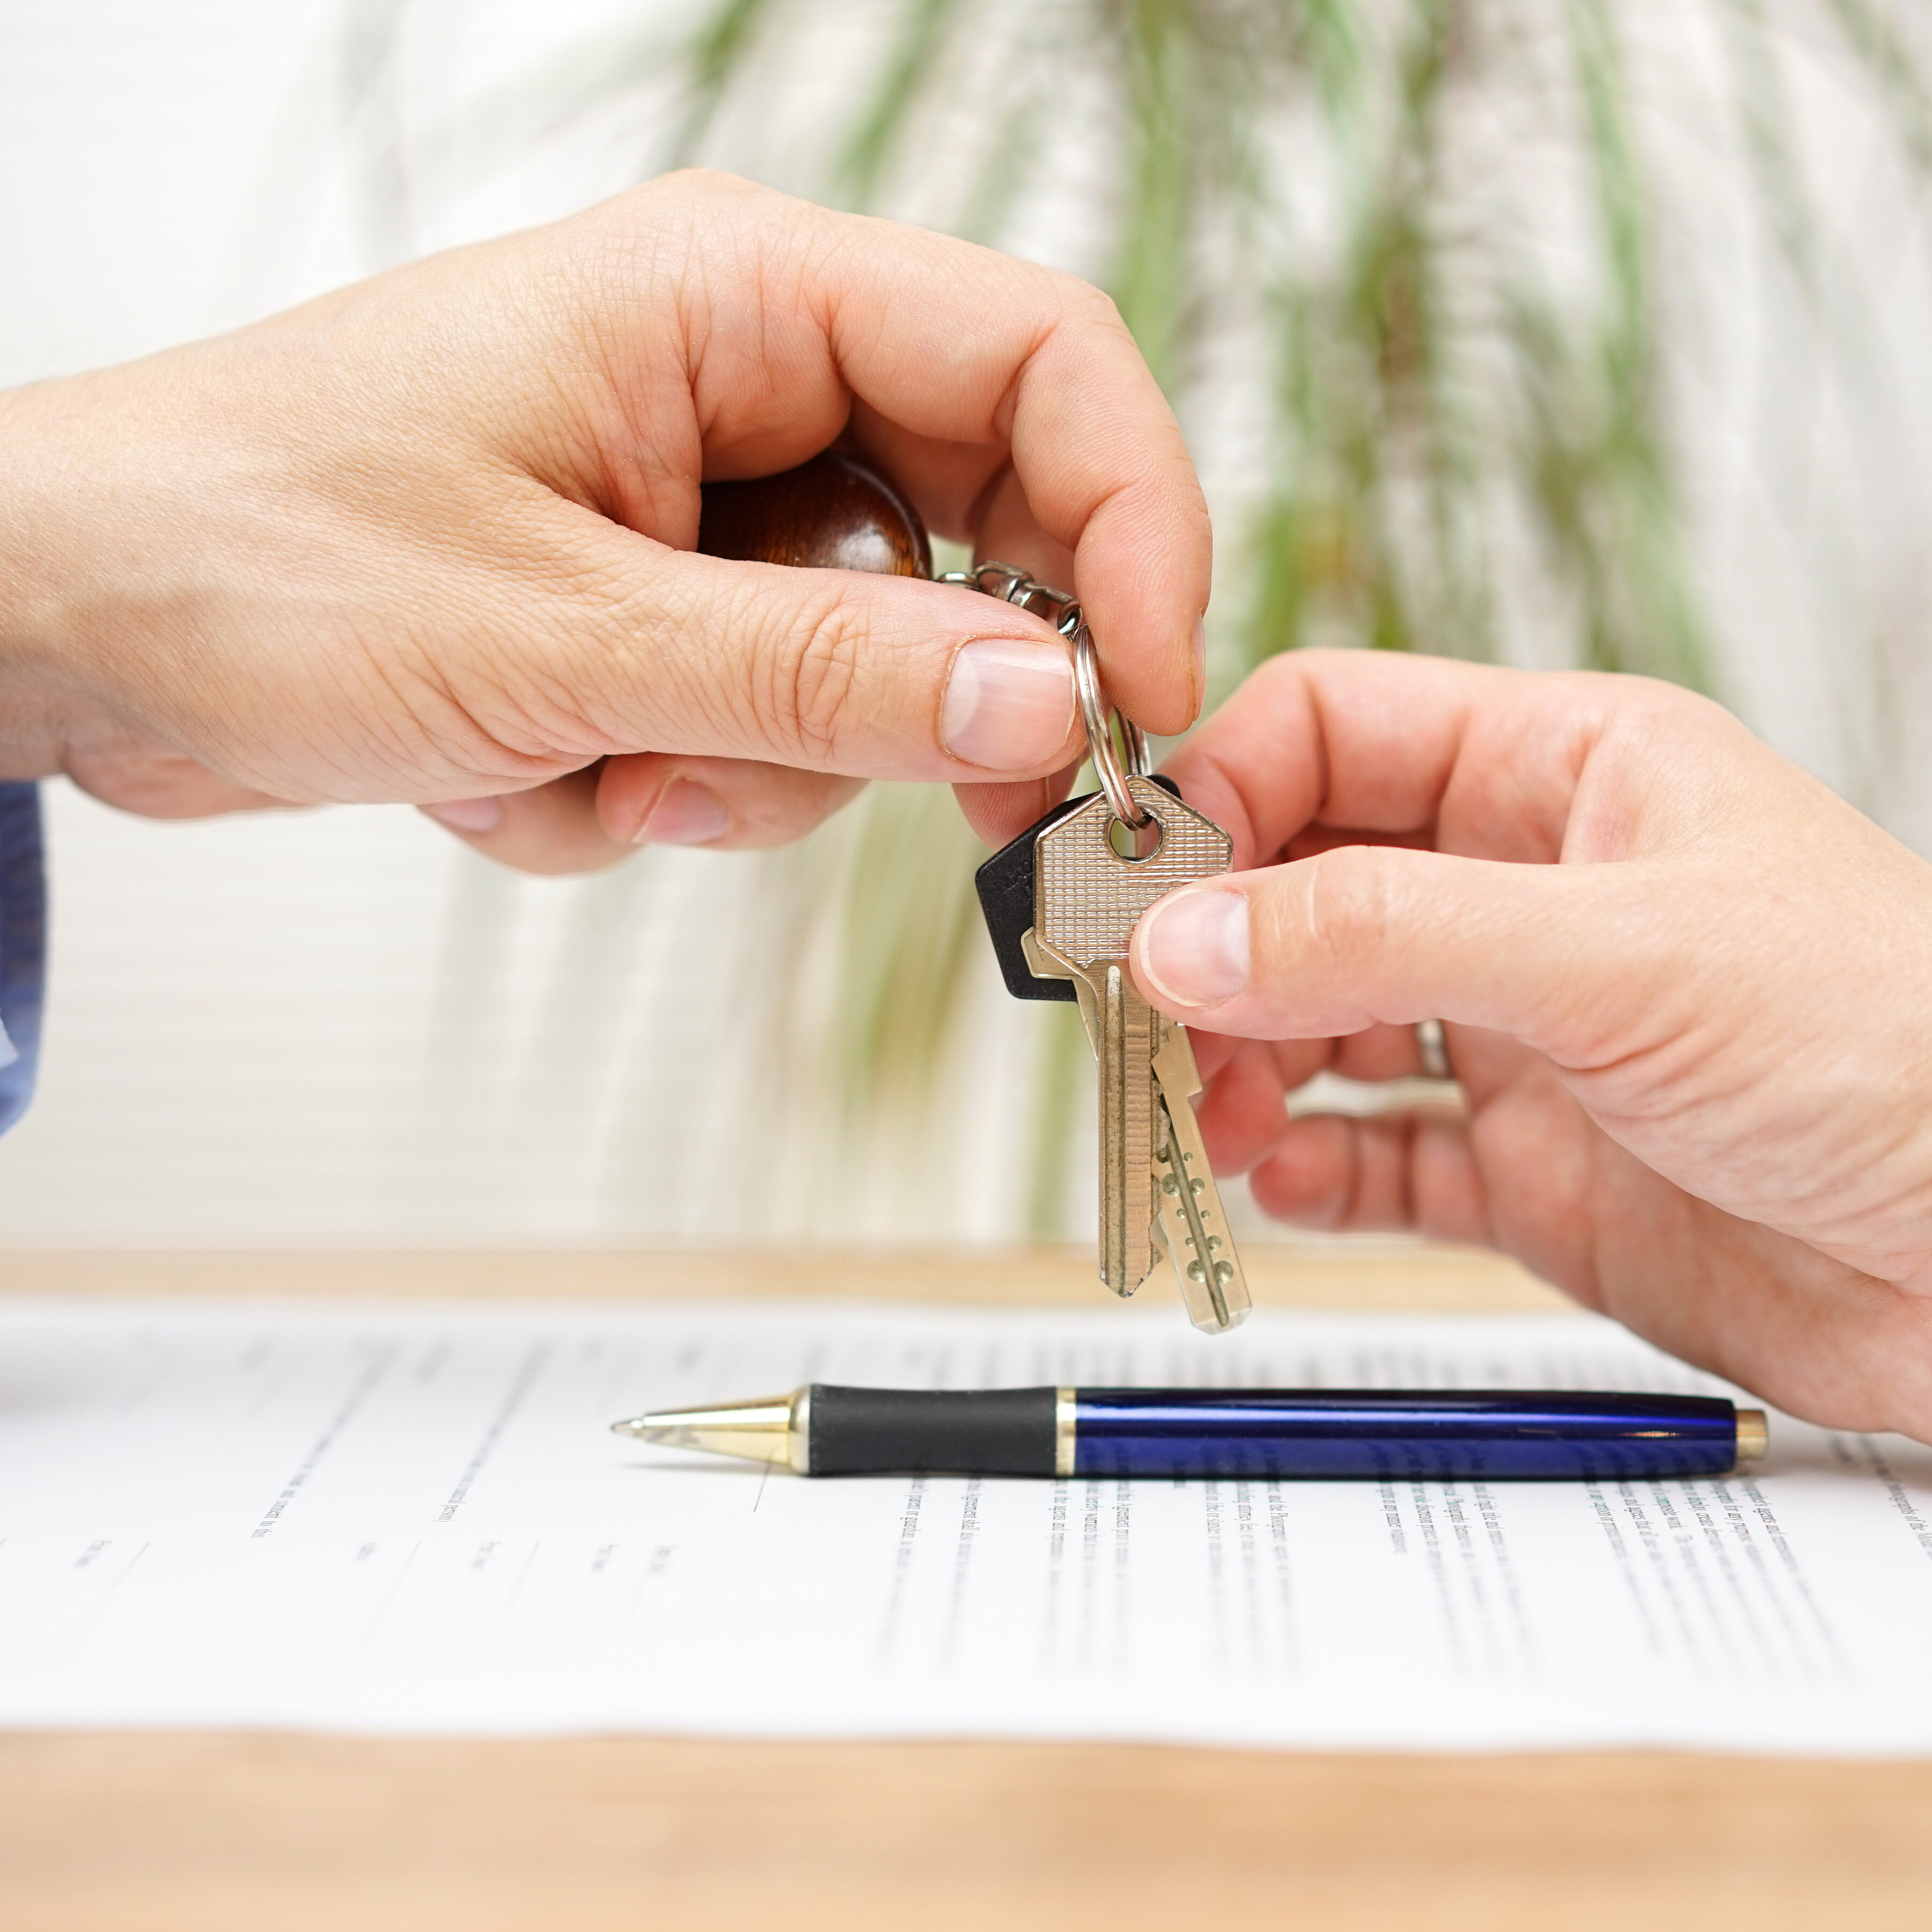 real estate agent gives house keys to his client after signing contract